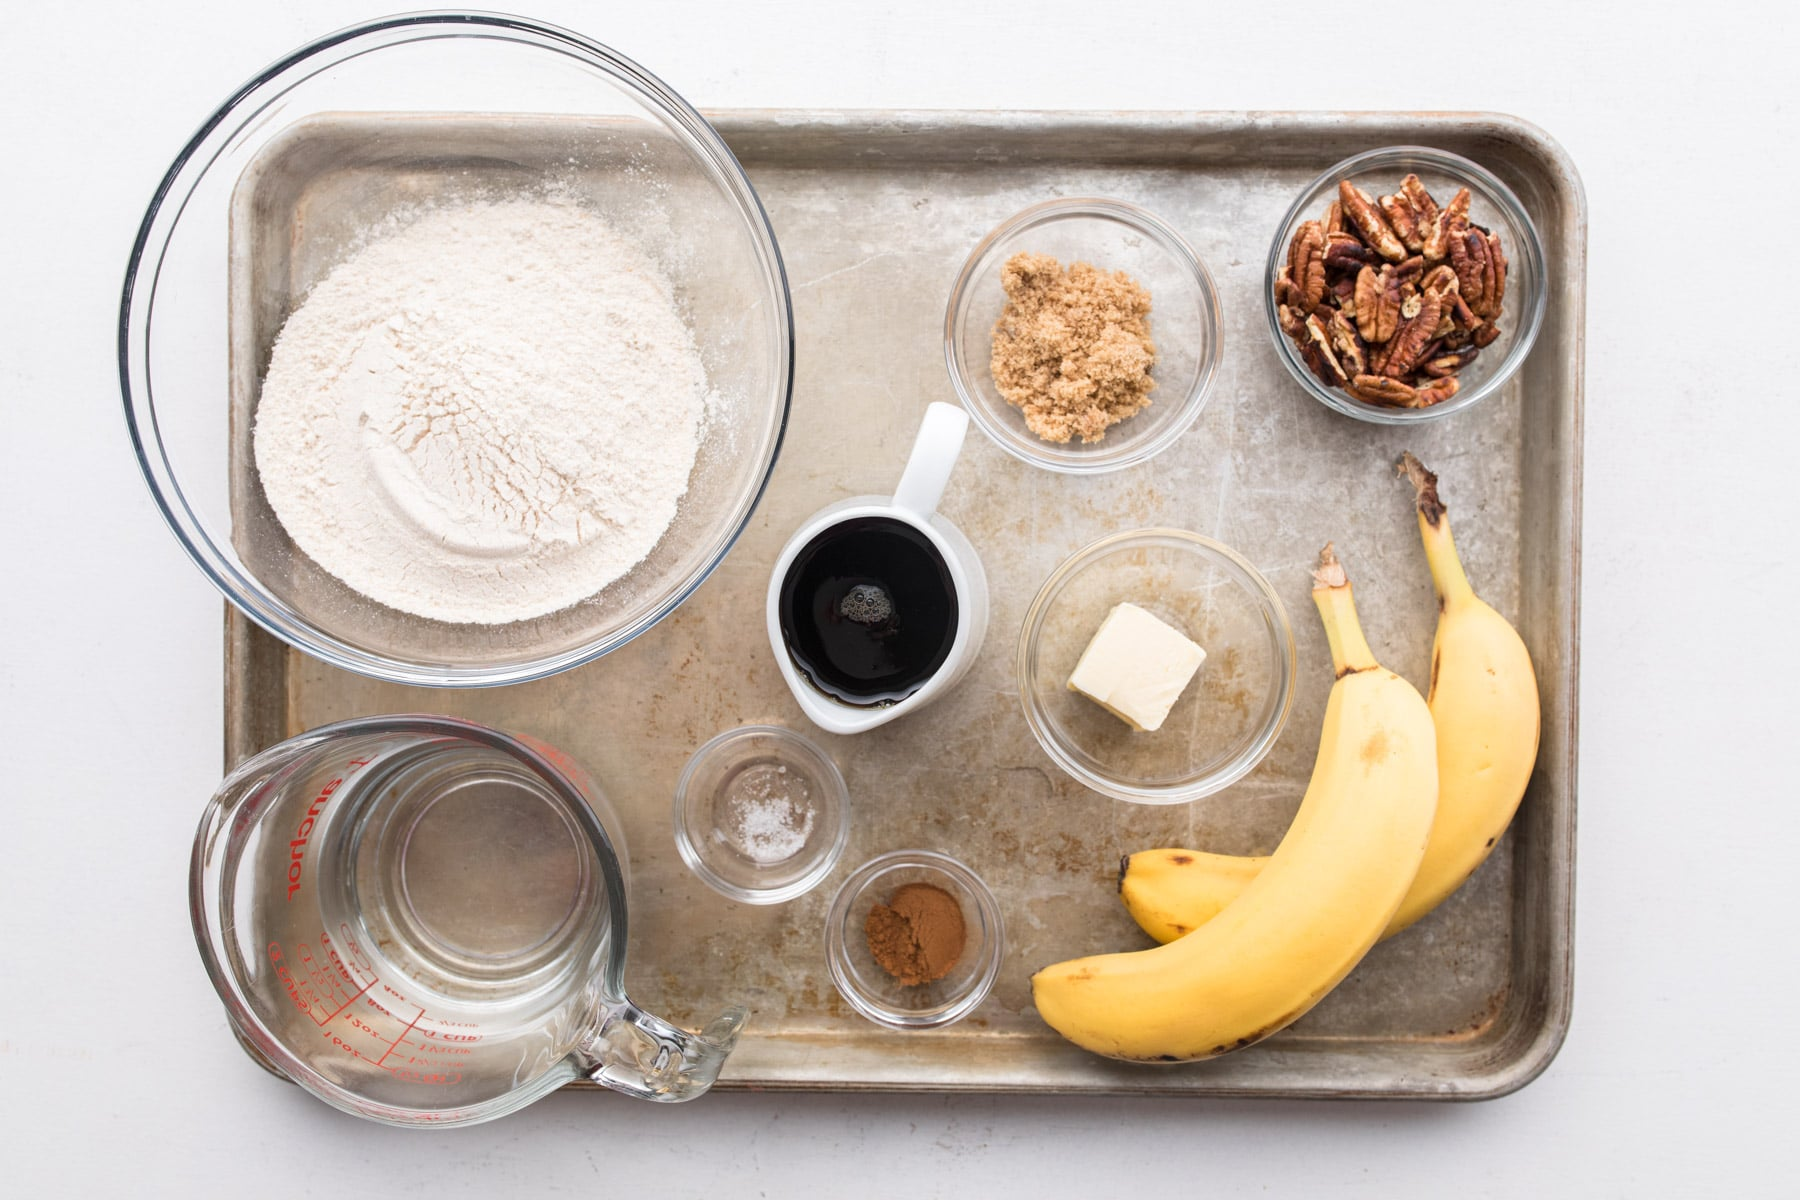 bananas, sugar, pancake mix, syrup, and other ingredients on a baking sheet